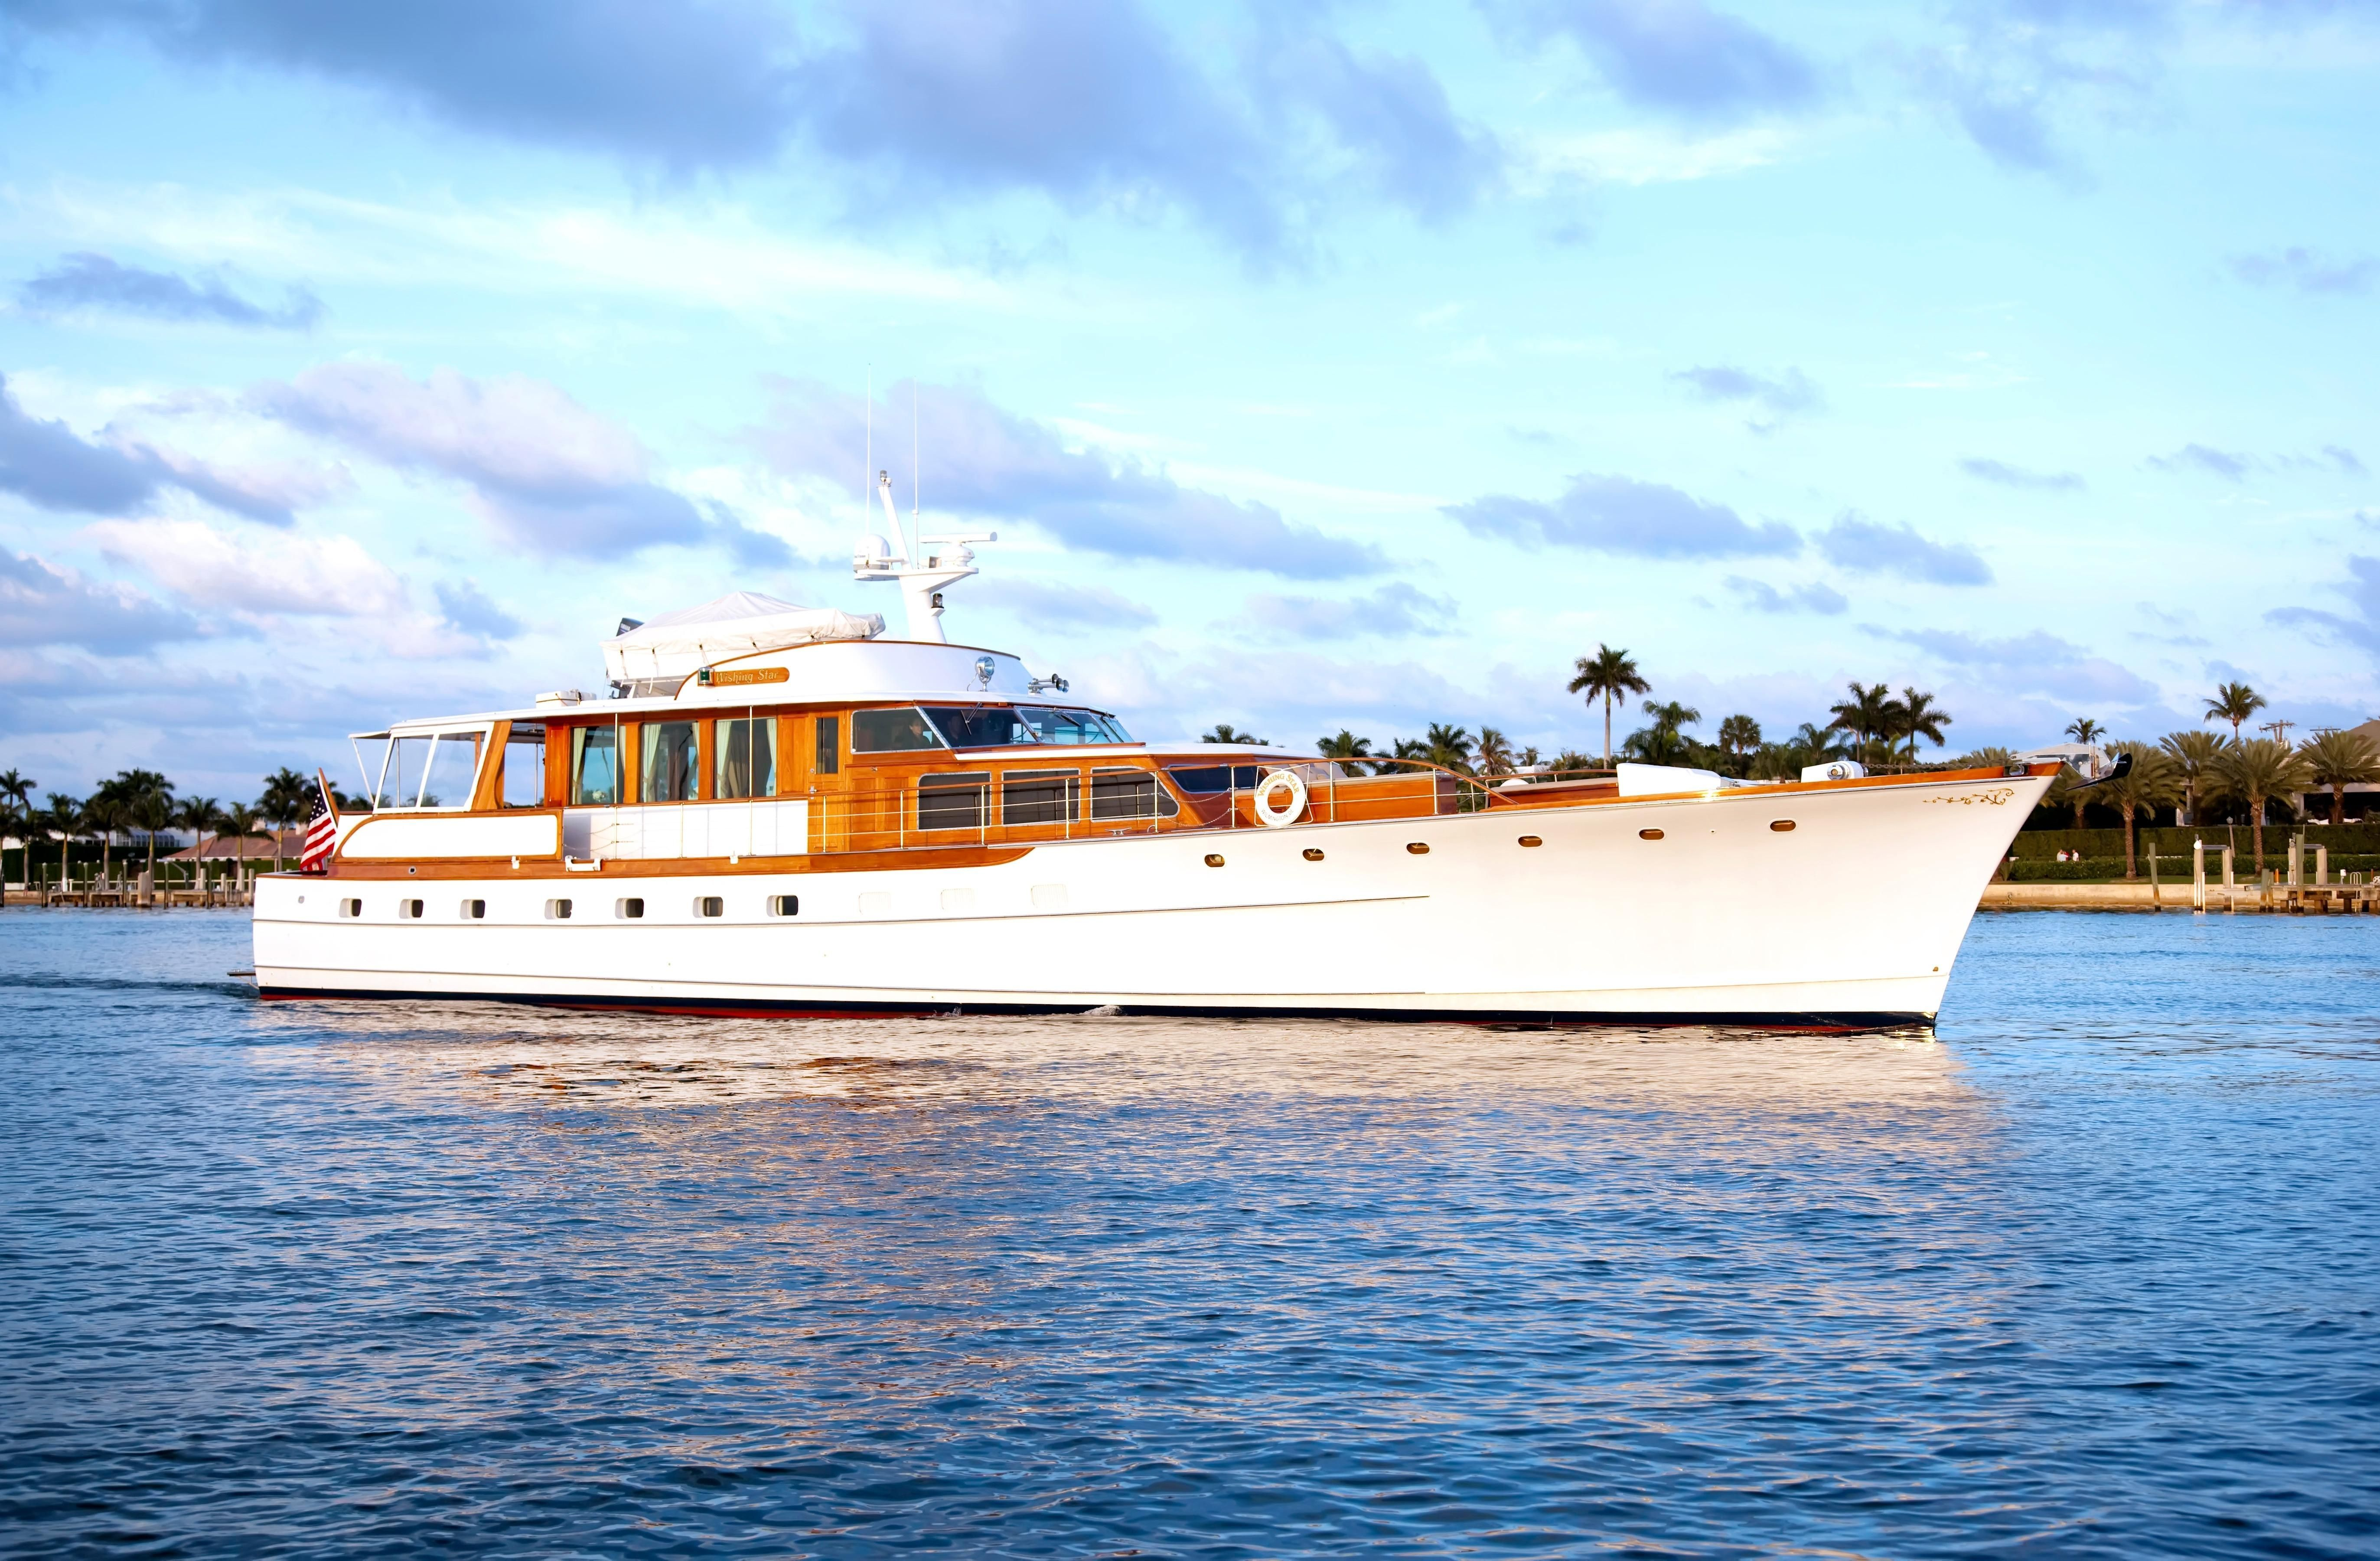 1963 Trumpy Power Boat For Sale Www Yachtworld Com Boat Design Classic Wooden Boats Classic Boats